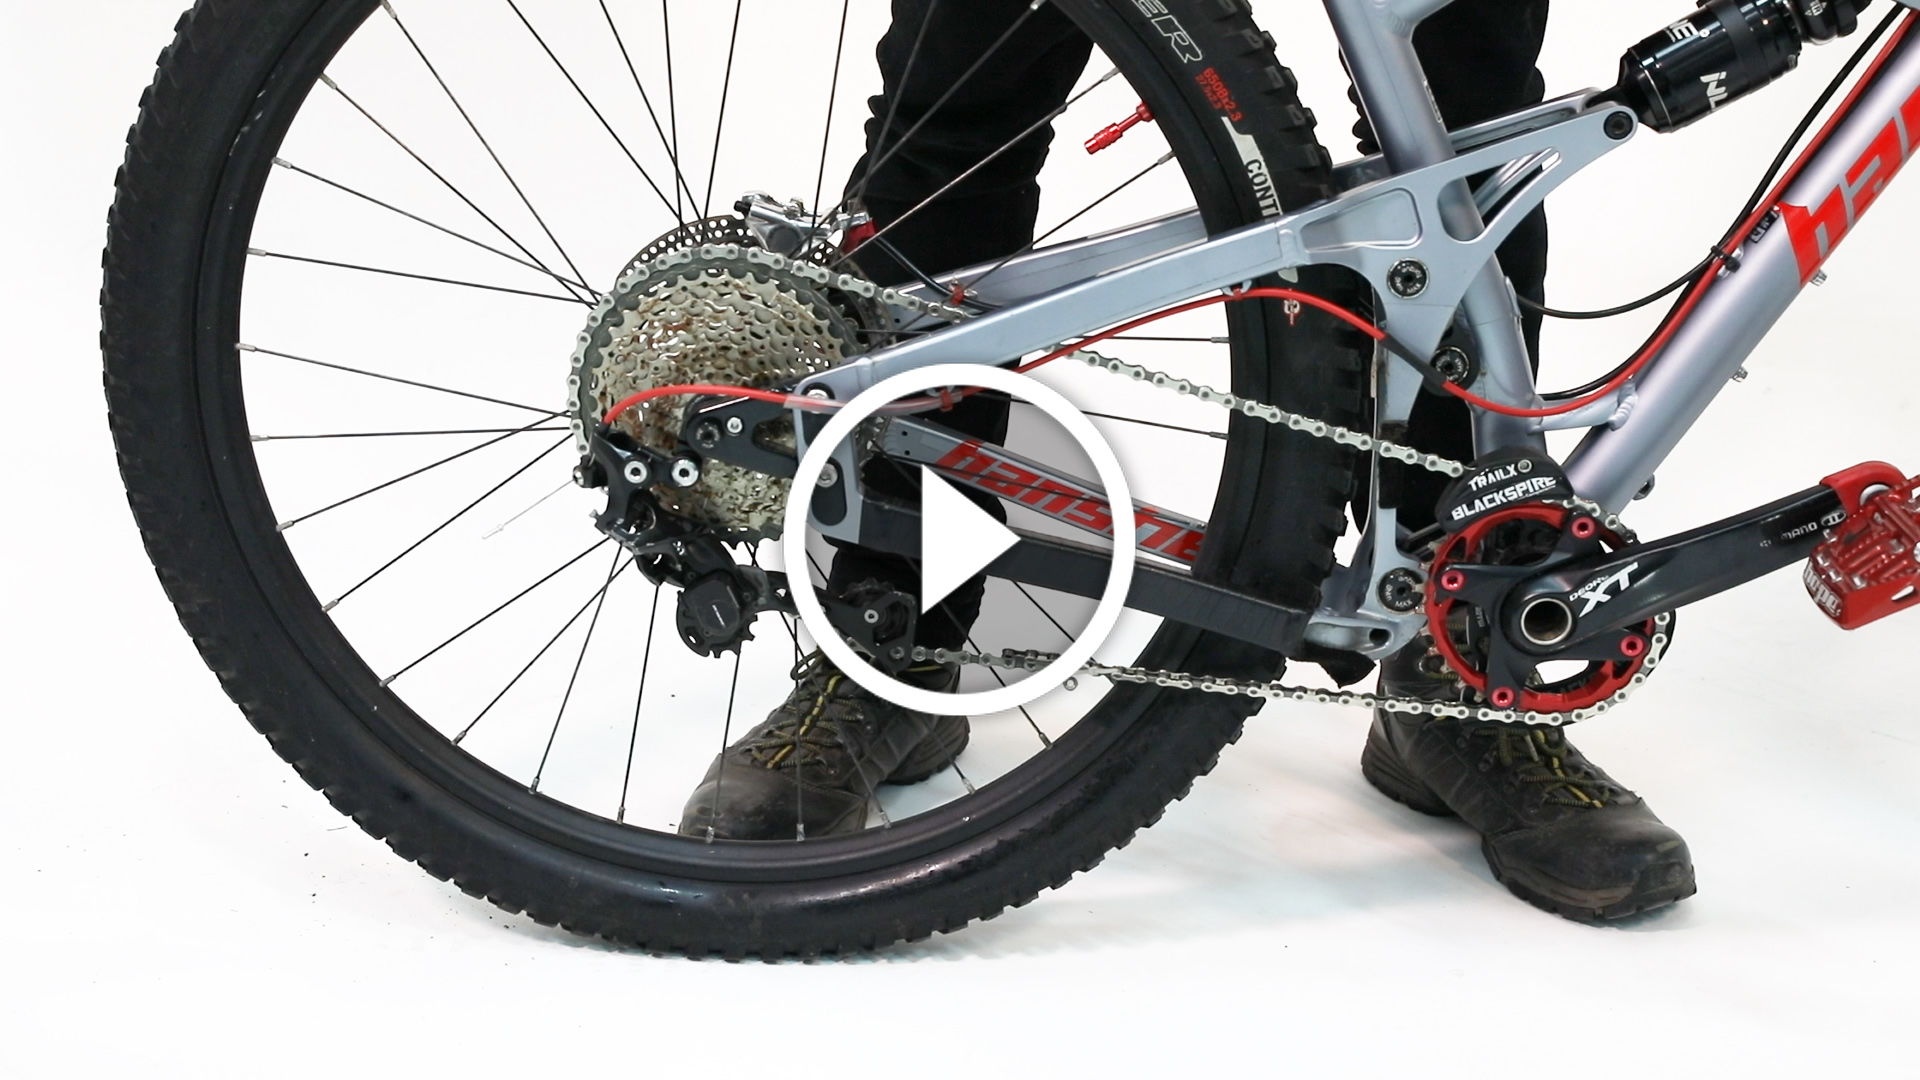 Watch: How to Install a New Chain on a Full Suspension Mountain Bike